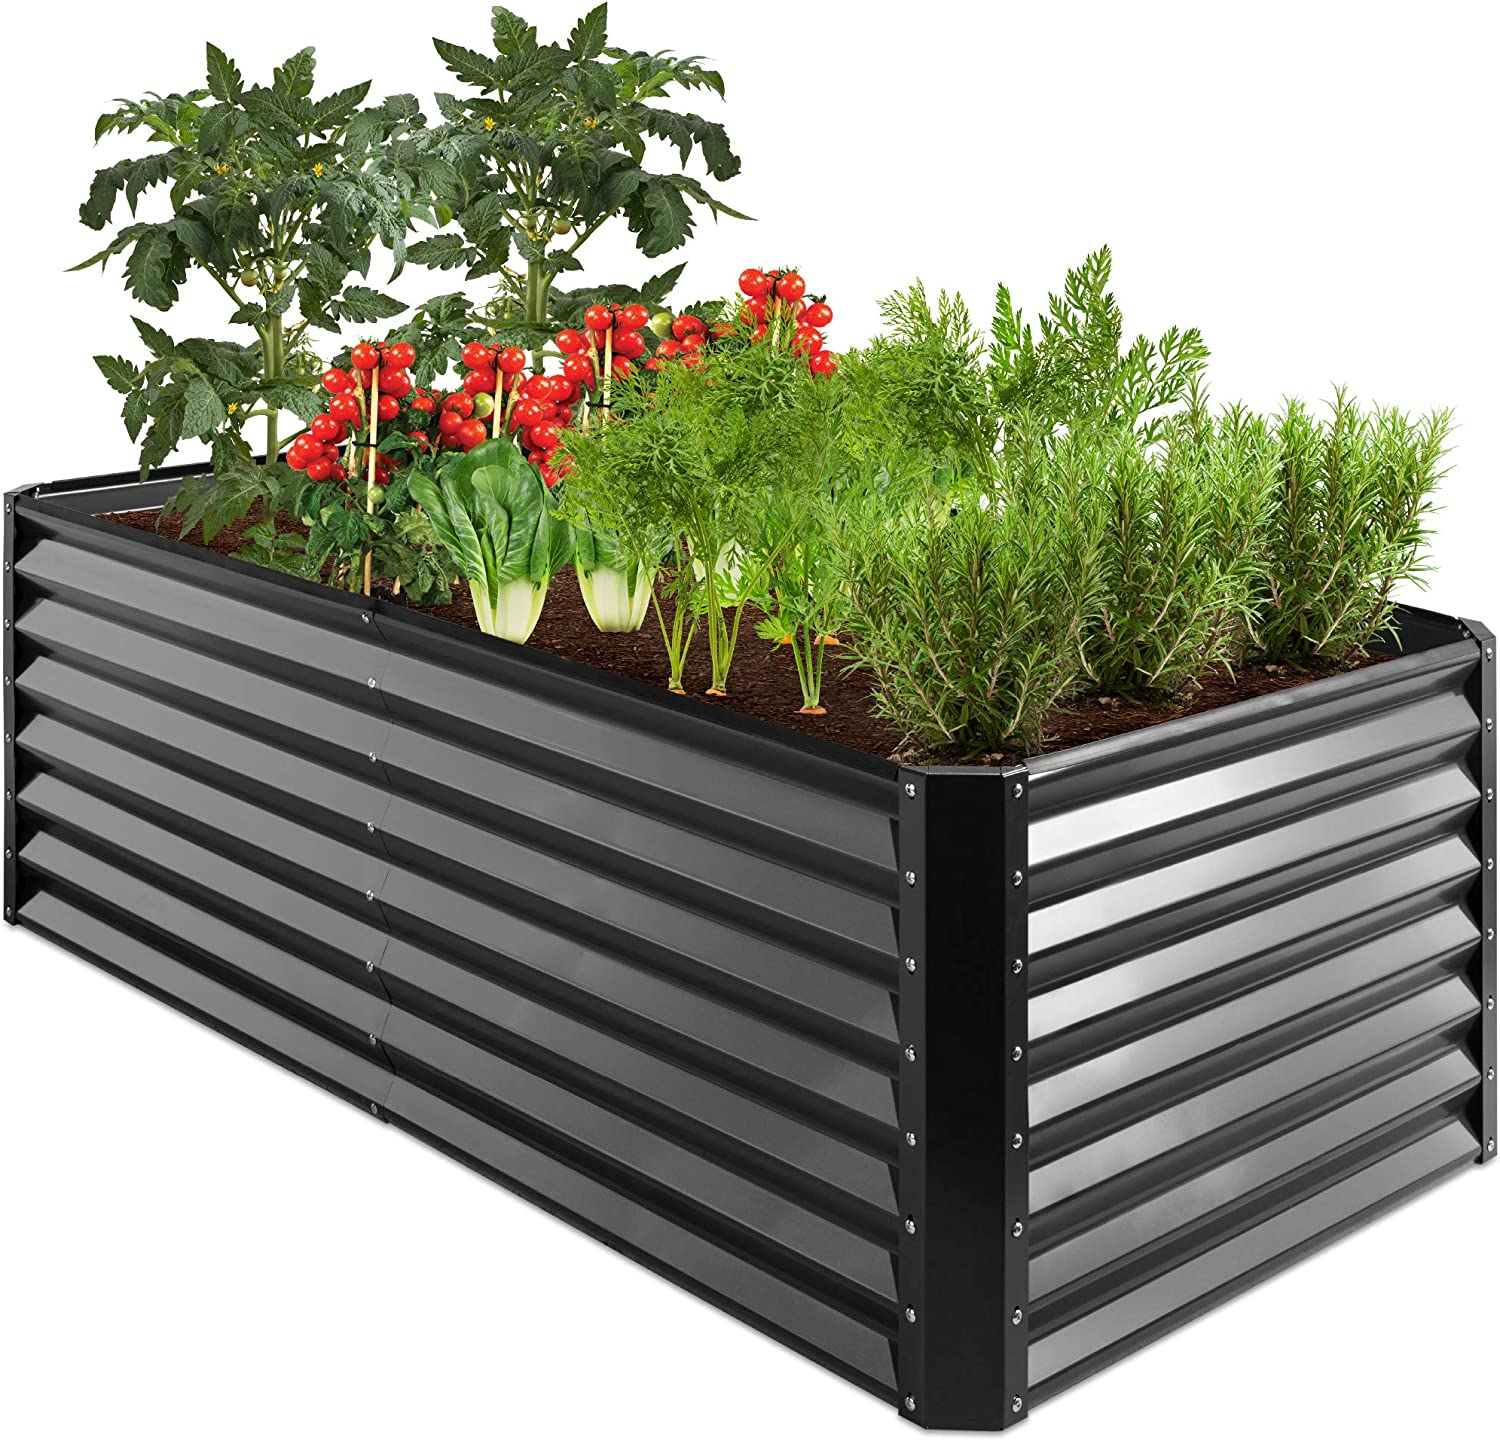 Best Choice Products 6x3x2ft Outdoor Metal Raised Garden Bed, Deep Root Box Planter for Vegetables, Flowers, Herbs, and Succulents w/ 269 Gallon Capacity